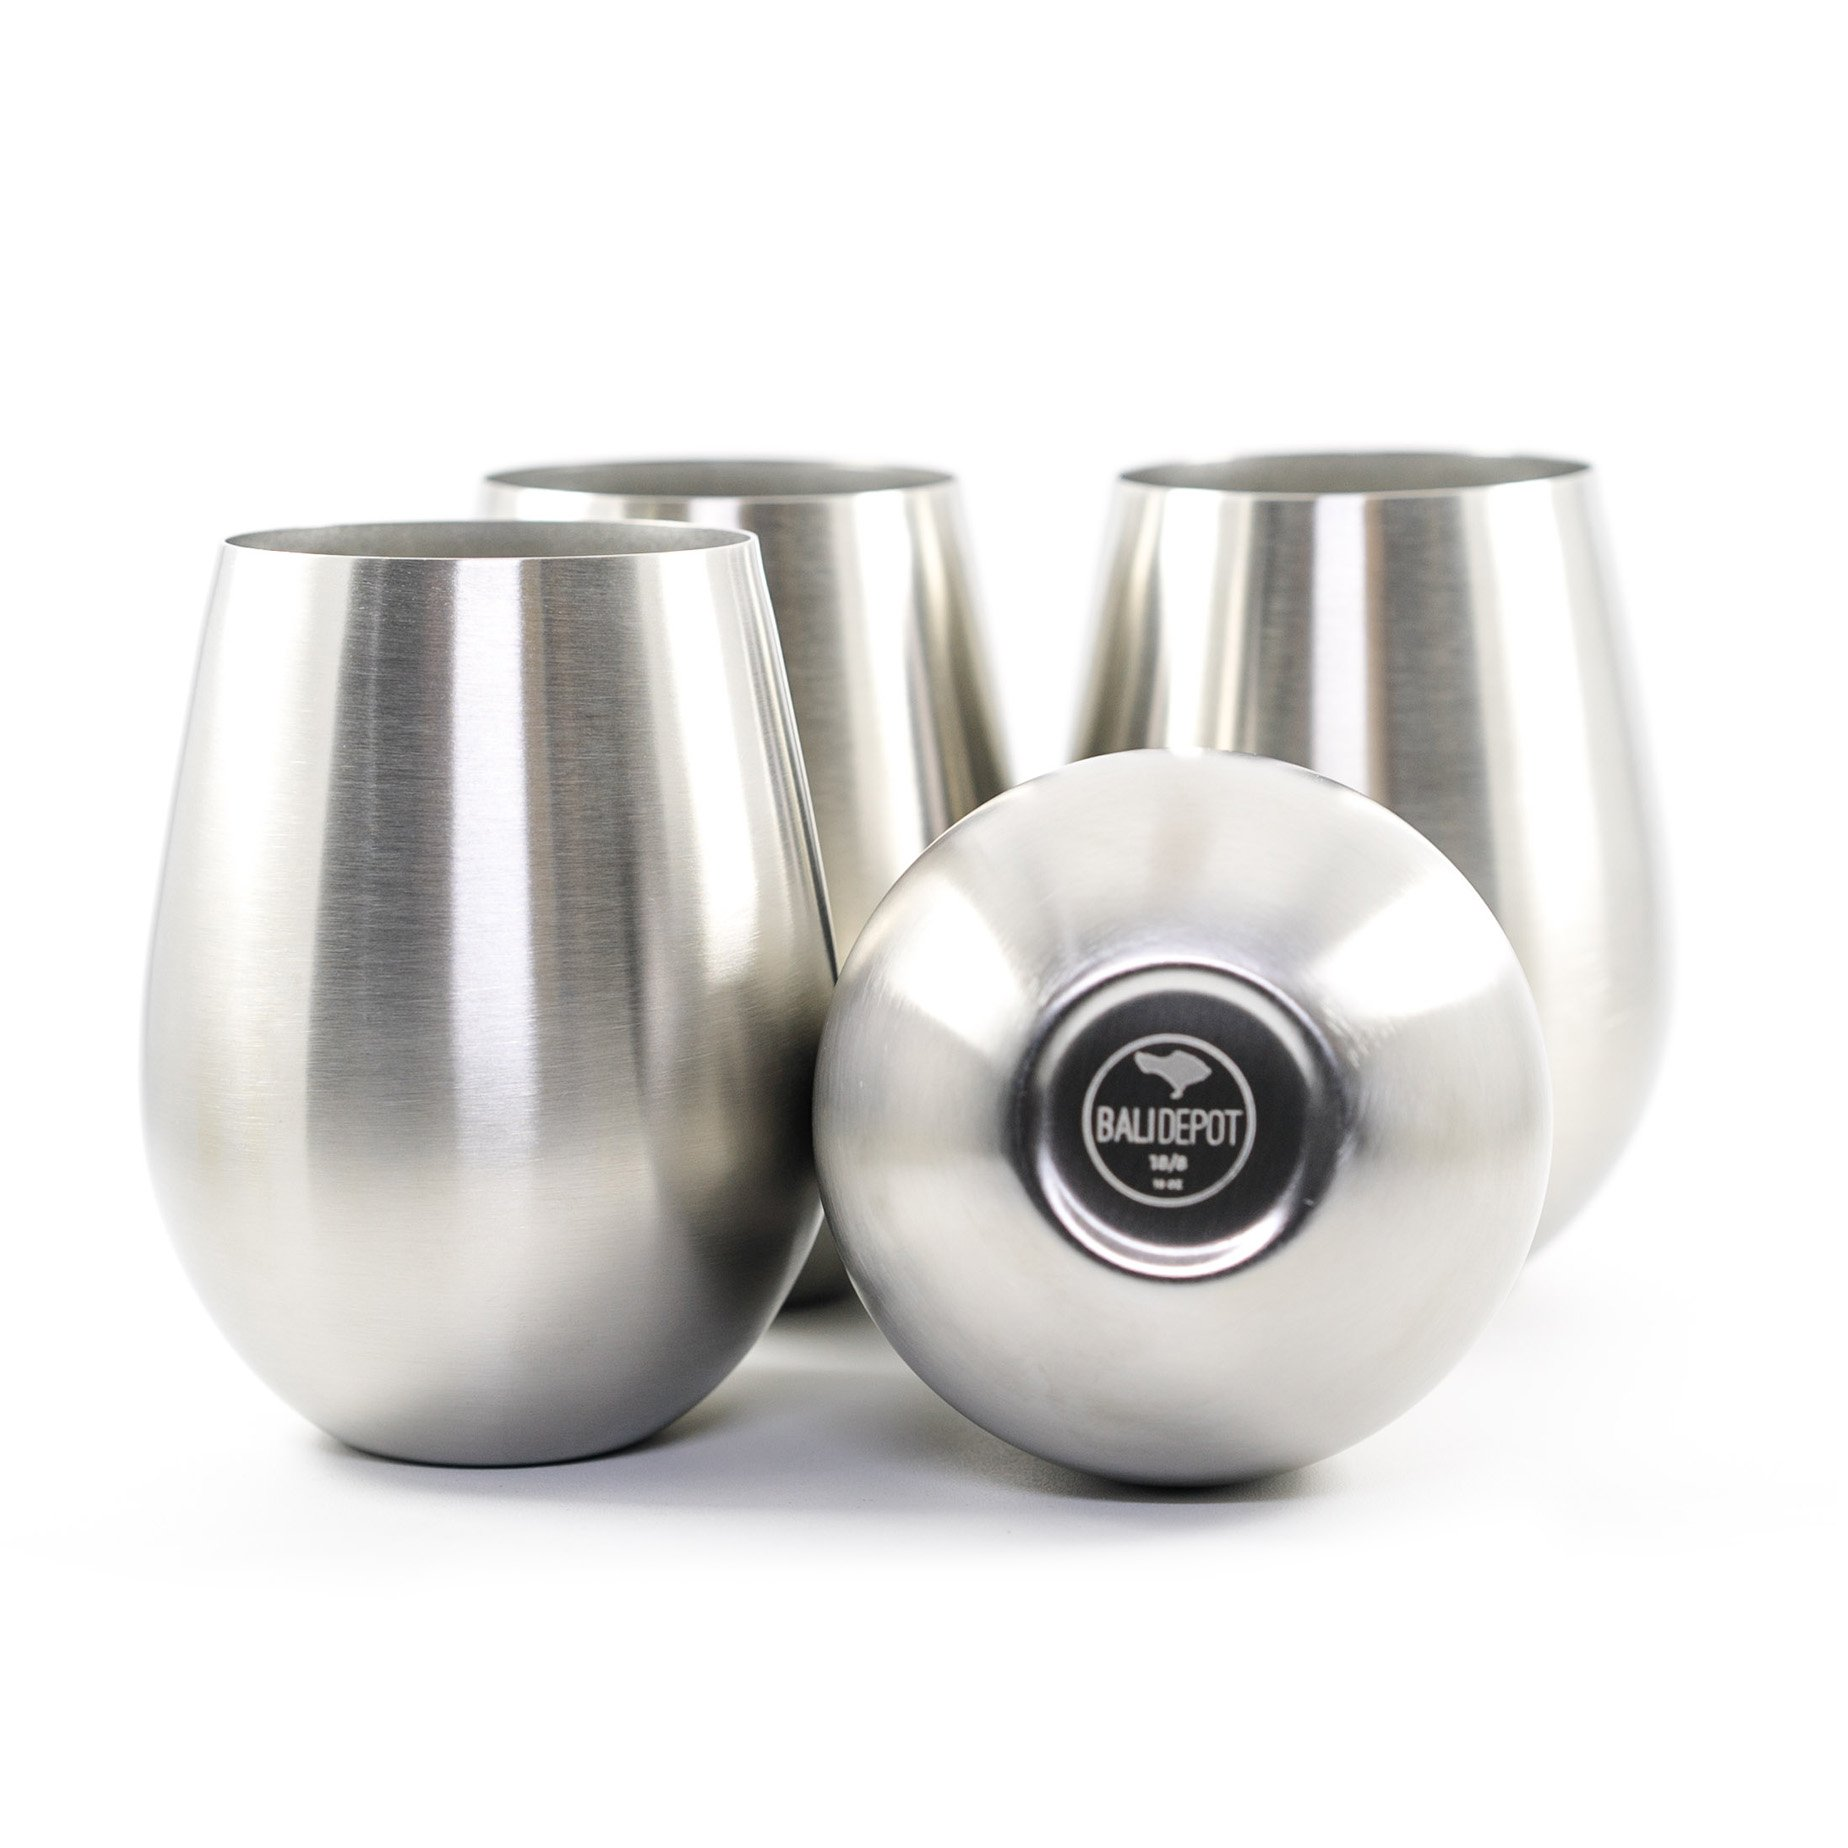 Stainless Steel Wine Glasses - Set of 4 Large & Elegant Stemless Cups - 18 oz Tumblers are Unbreakable, Shatterproof, Dishwasher Safe, BPA & Toxin Free - Perfect Goblets for ALL Drinks & Activities